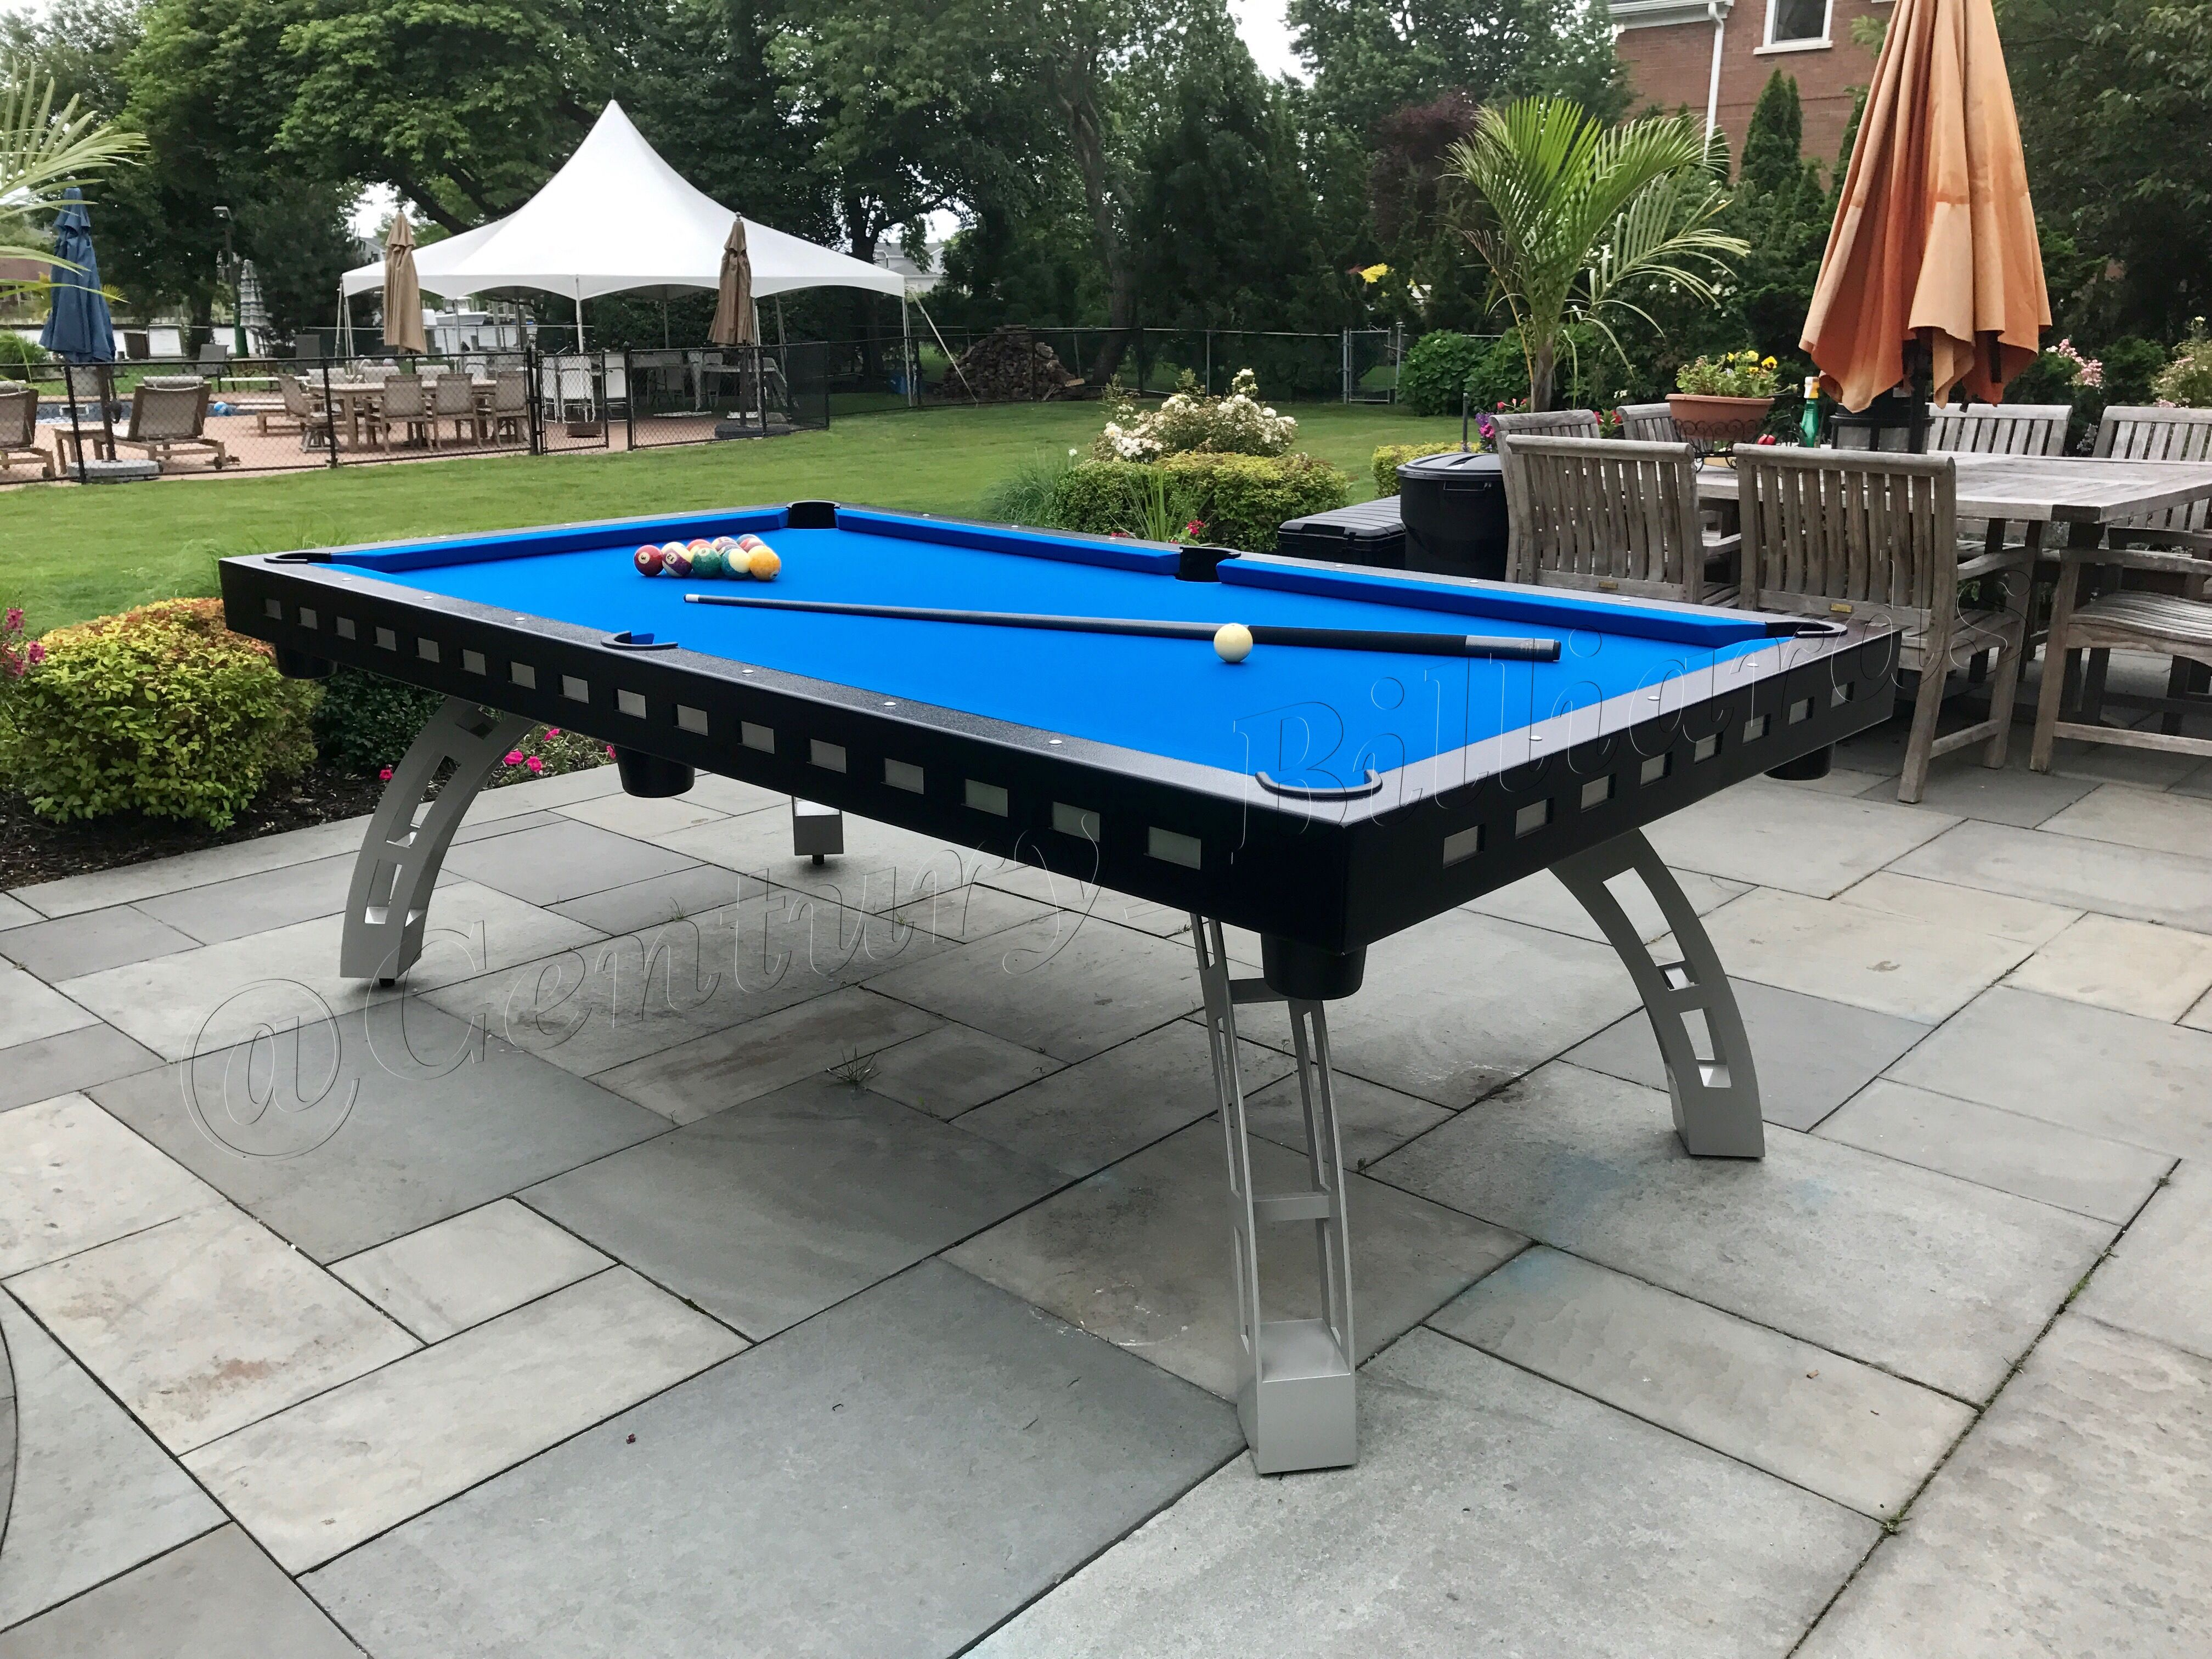 Unique Design Outdoor Pool Table 100 Waterproof Modern Style Billiards Table All Aluminum Stainless Steel Outdoor Pool Table Pool Table Covers Pool Table